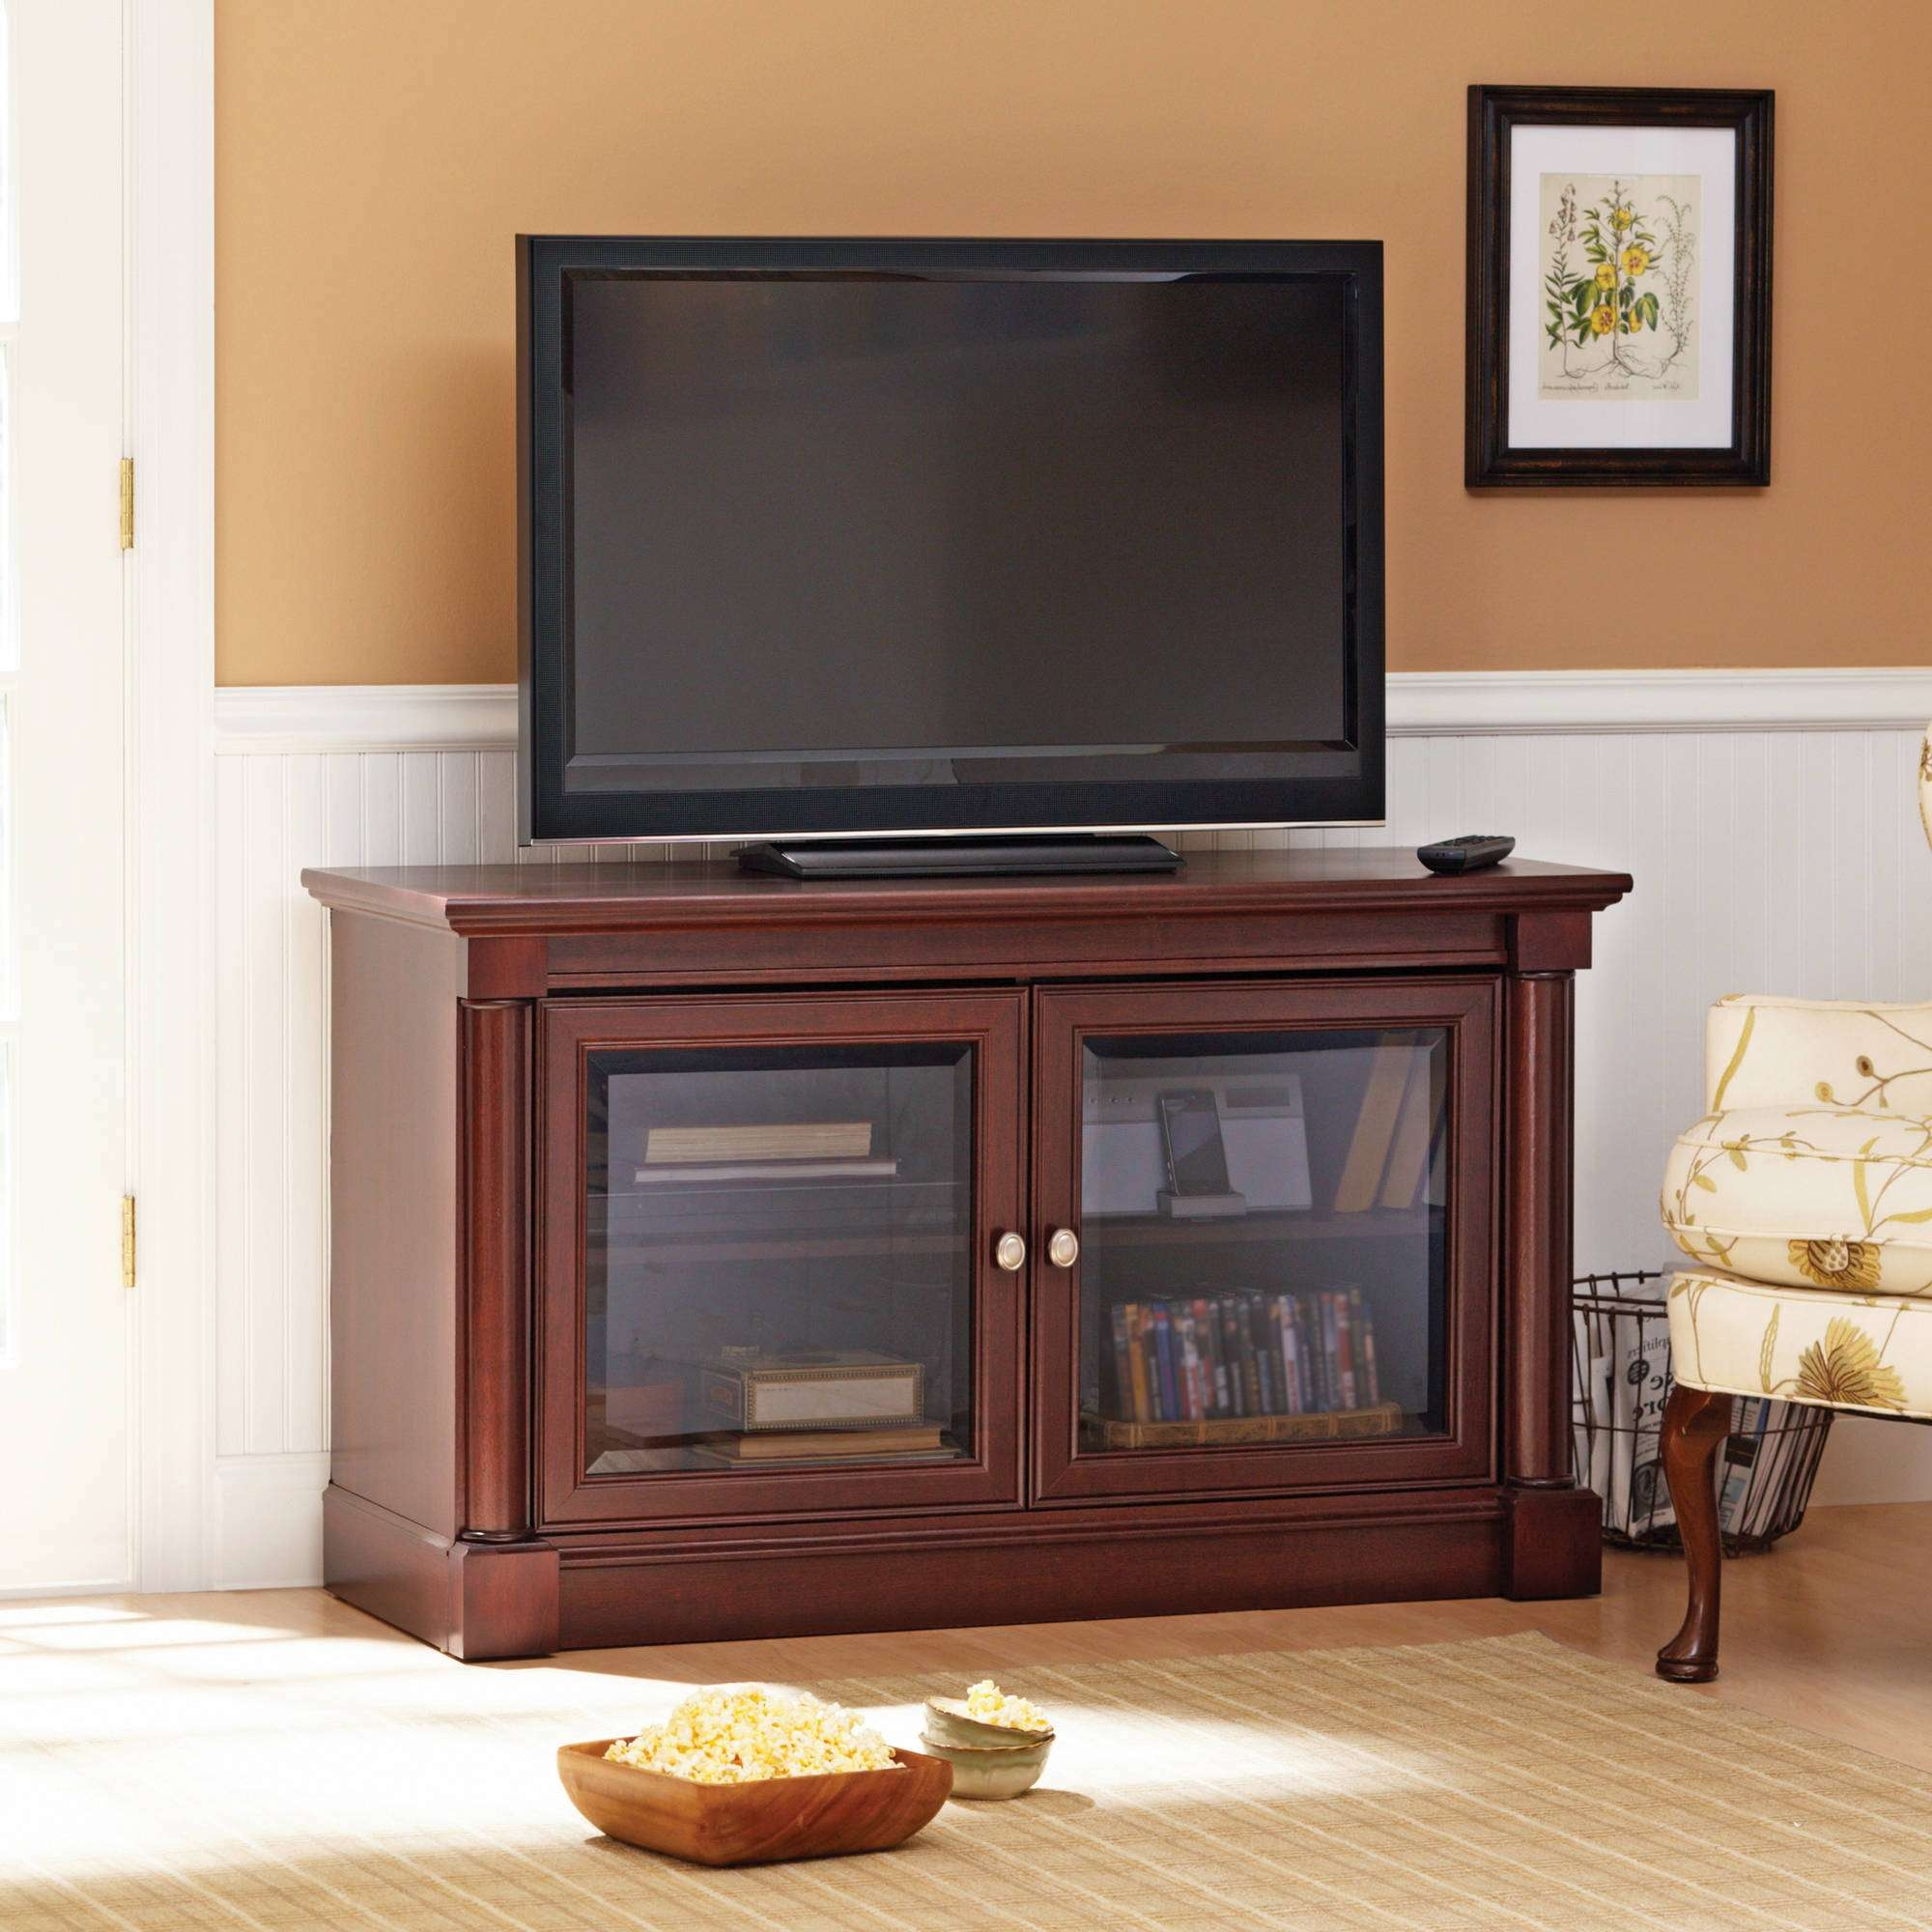 Better Homes And Gardens Ashwood Road Cherry Tv Stand, For Tvs Up Inside Cherry Wood Tv Cabinets (View 3 of 20)